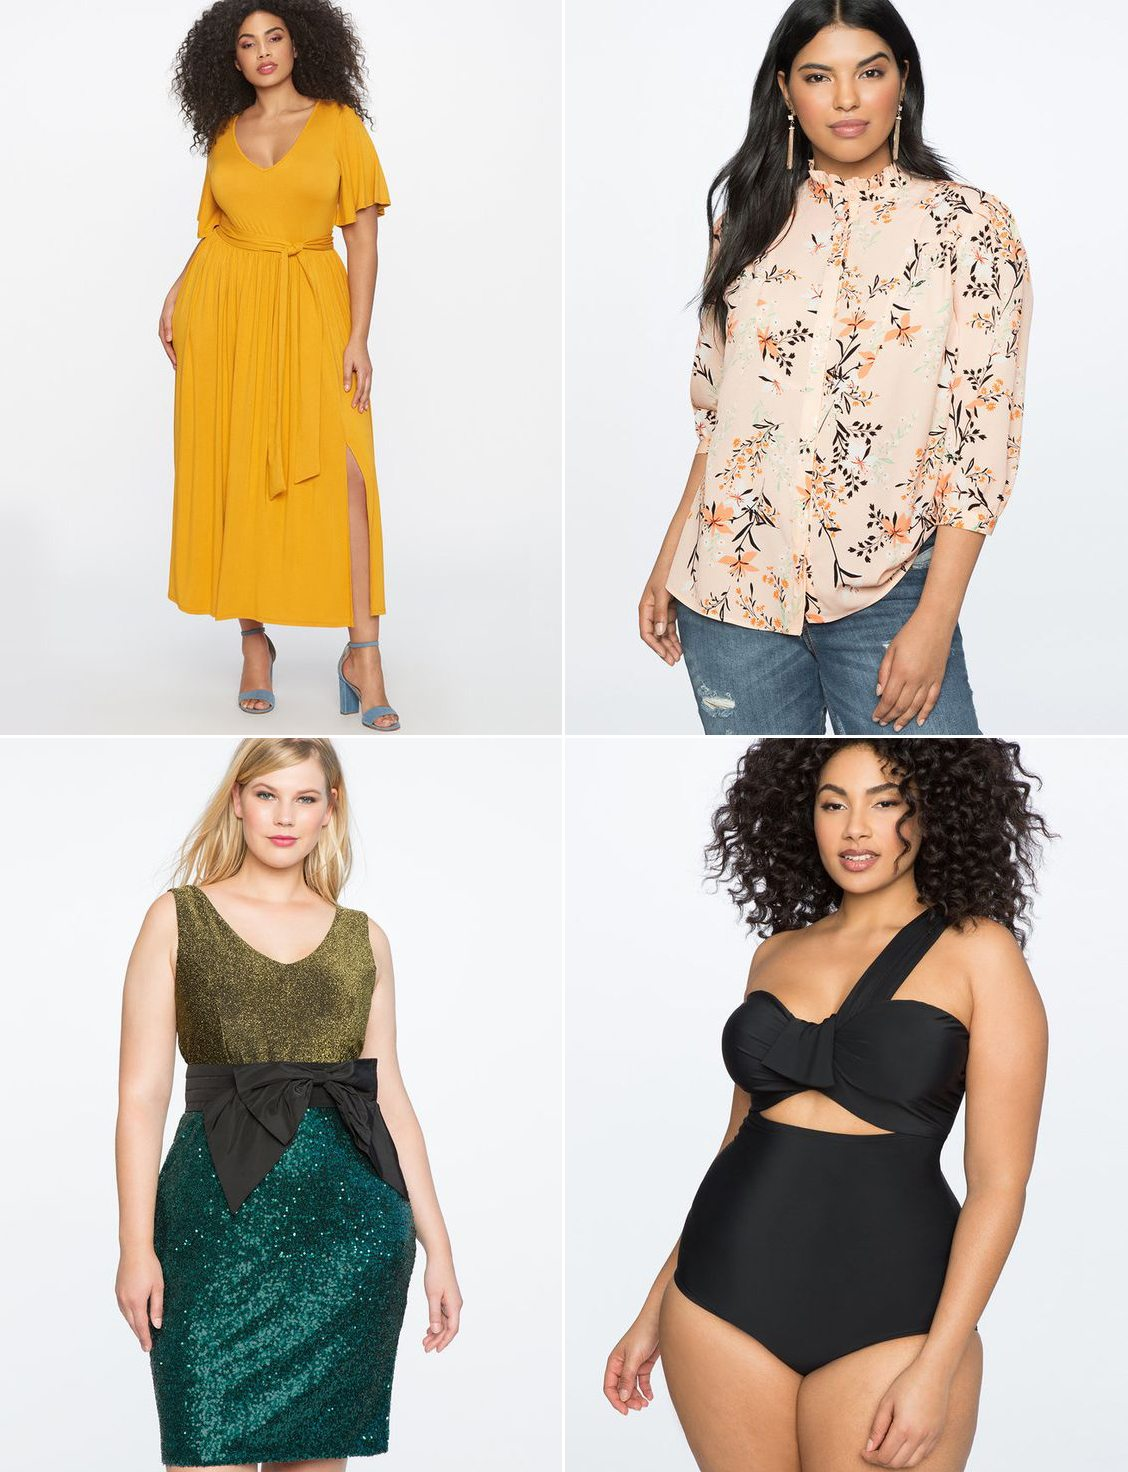 Where to shop for stylish and trendy plus size clothing - click through for all @cydconverse's favorite places to shop! | Eloquii Review